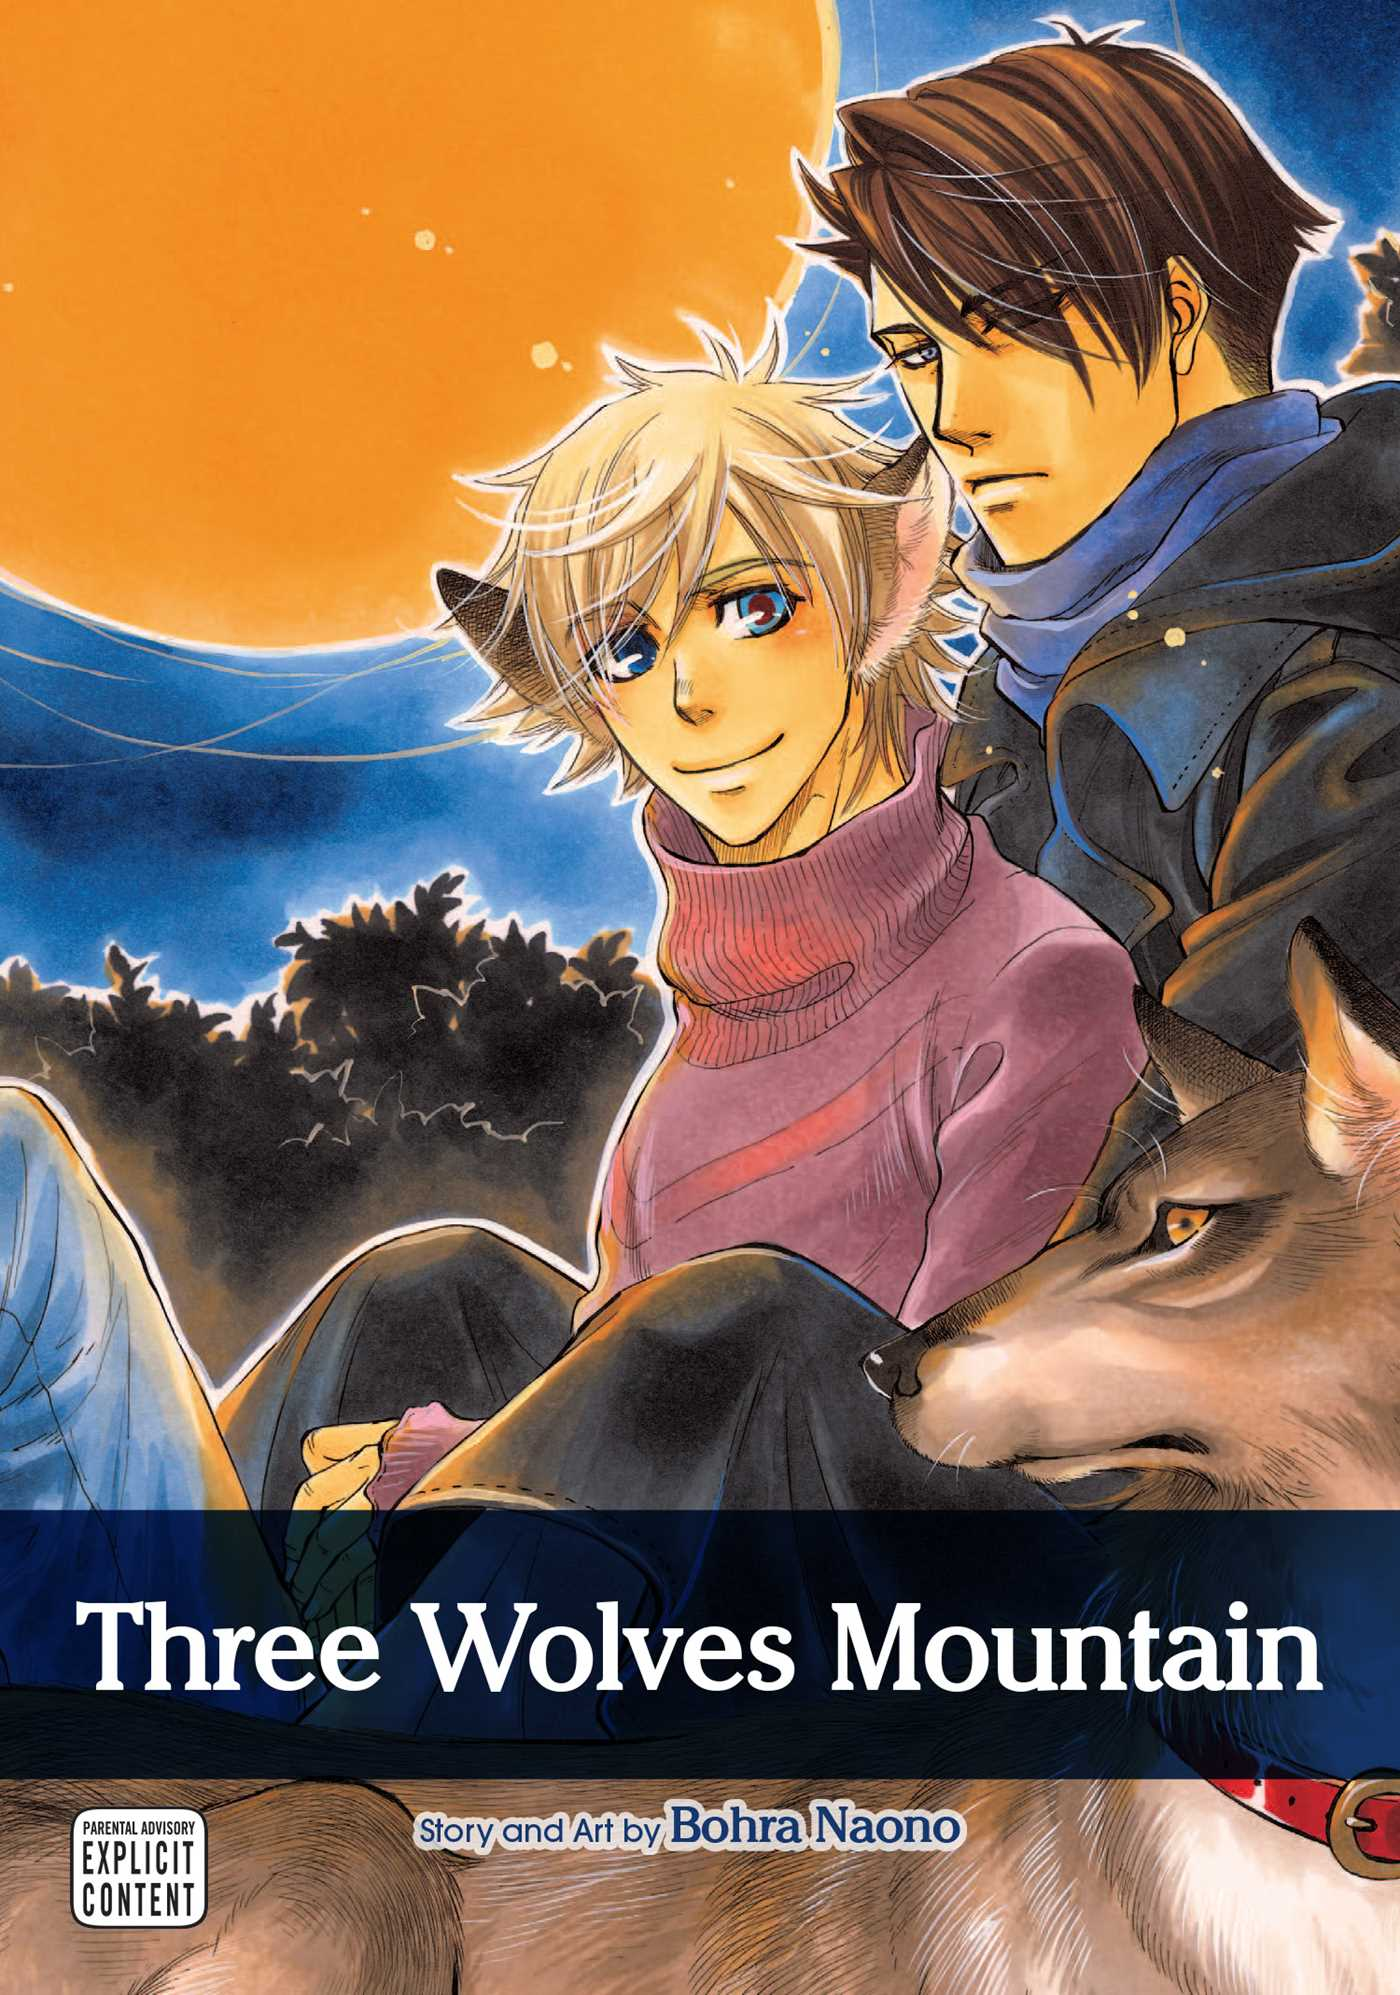 Three wolves mountain yaoi manga 9781421543468 hr